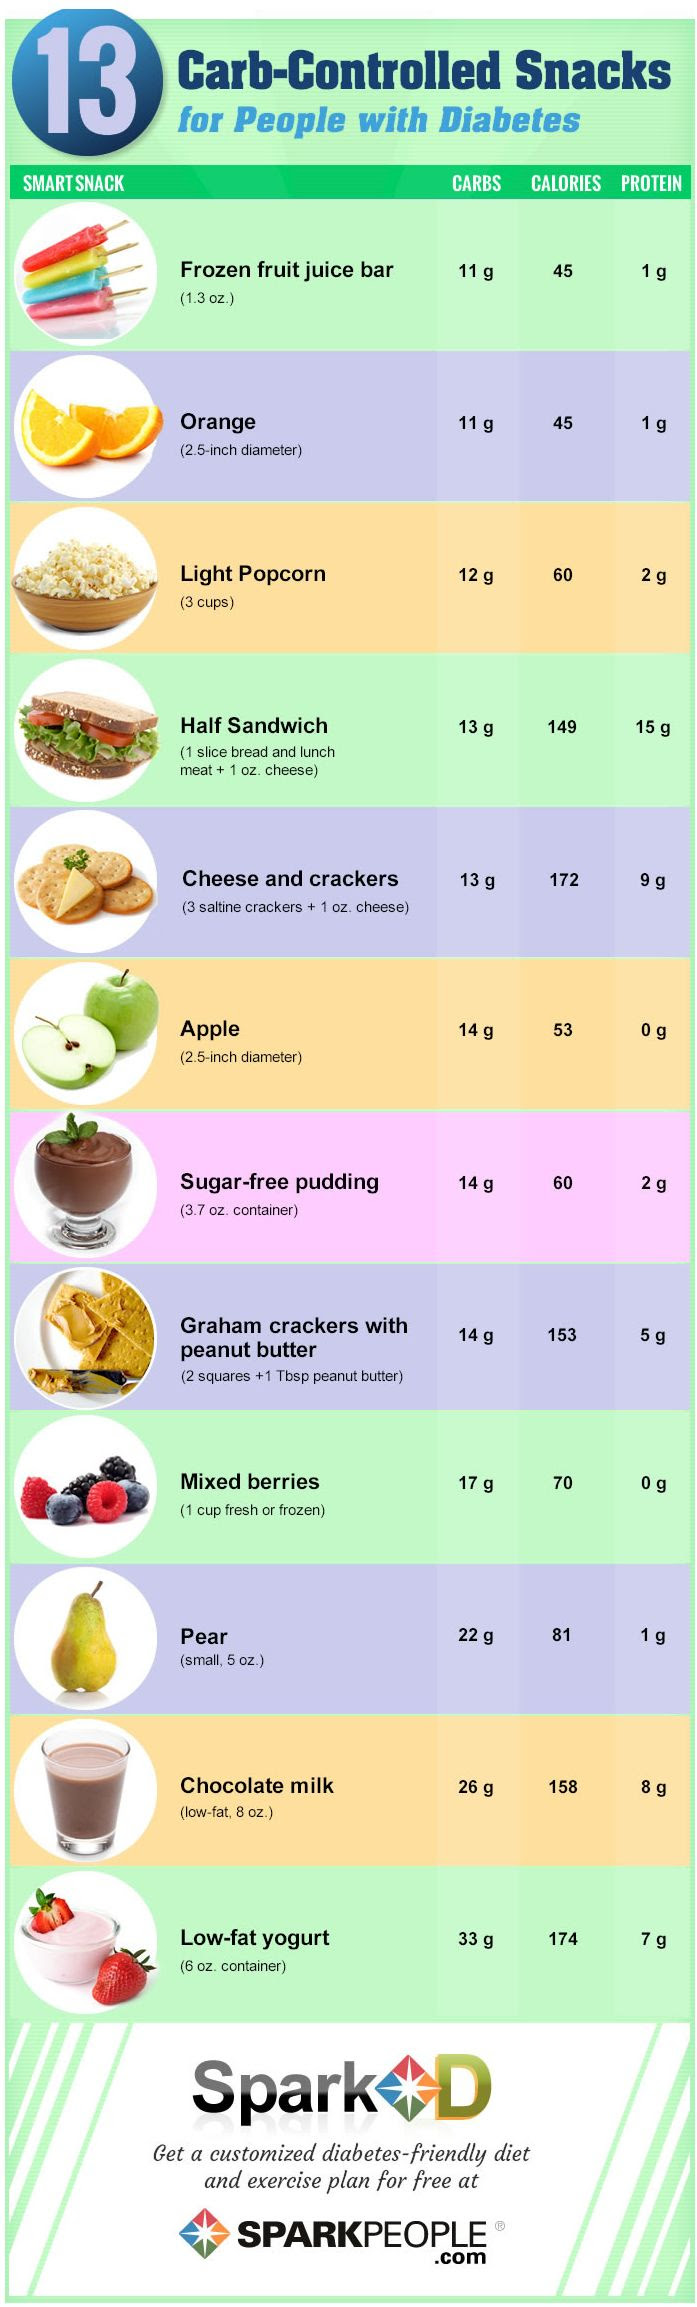 13 Carb-Controlled Snacks   SparkPeople